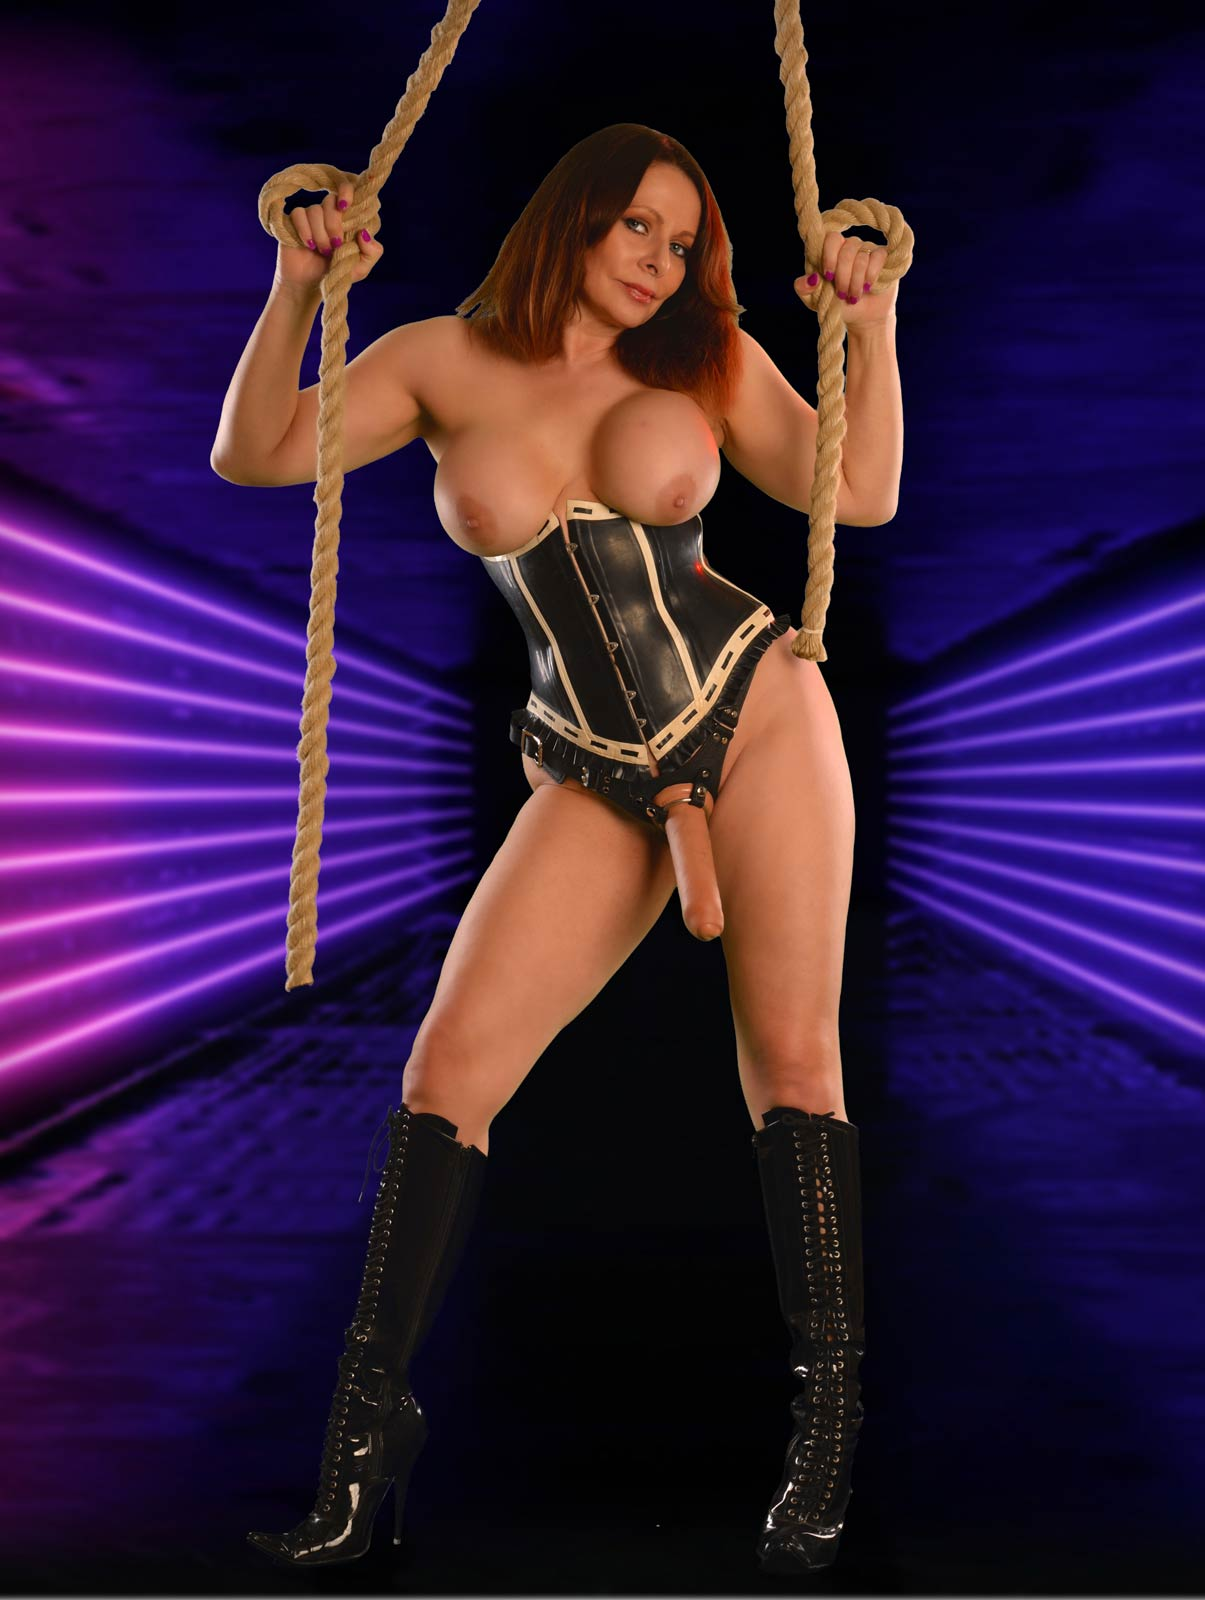 Strap-On Humiliation with Miss DeLaVere